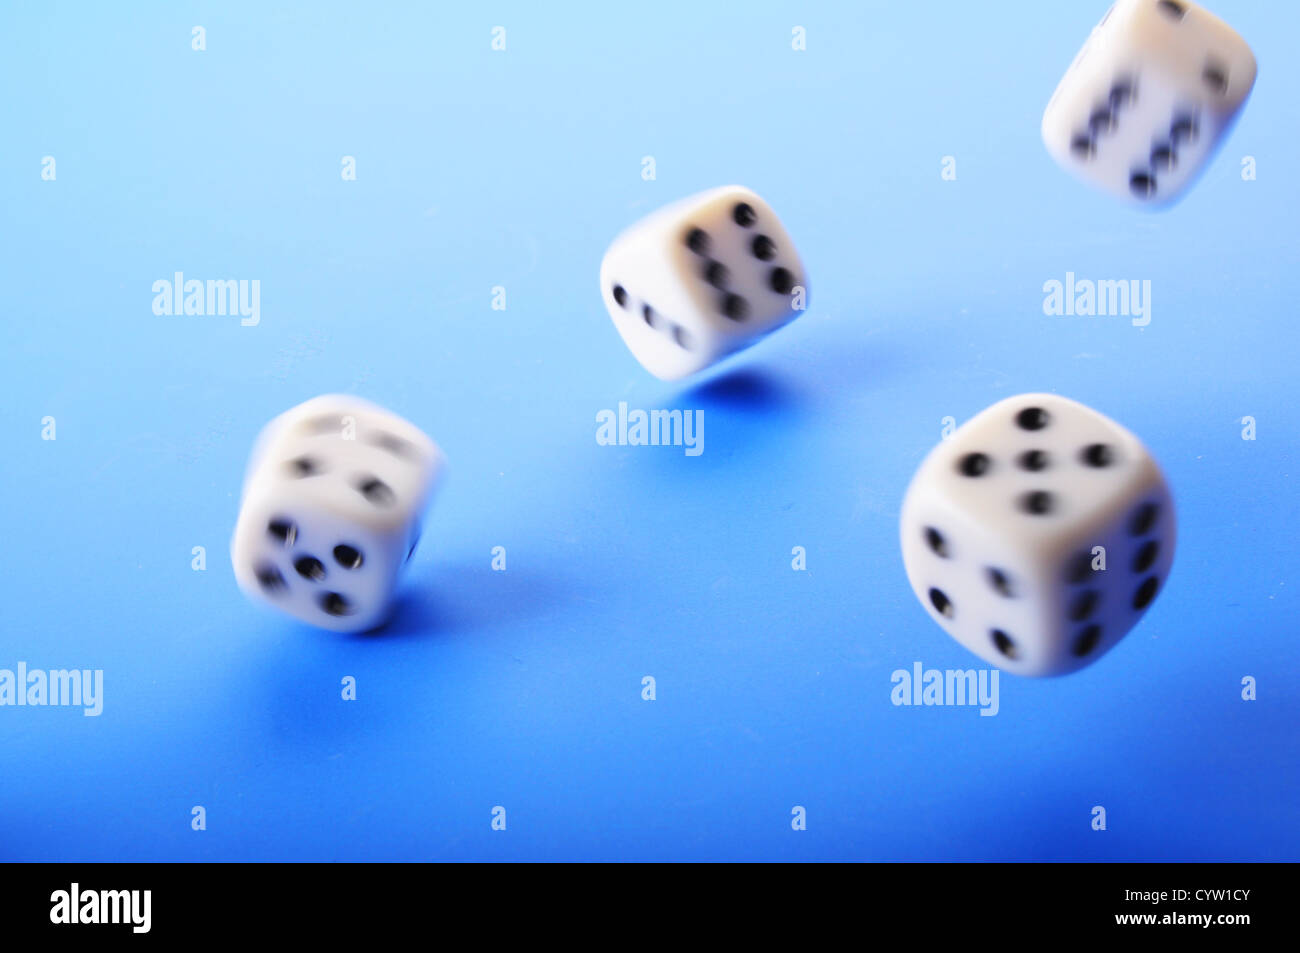 falling dice showing random fortune or casino concept - Stock Image